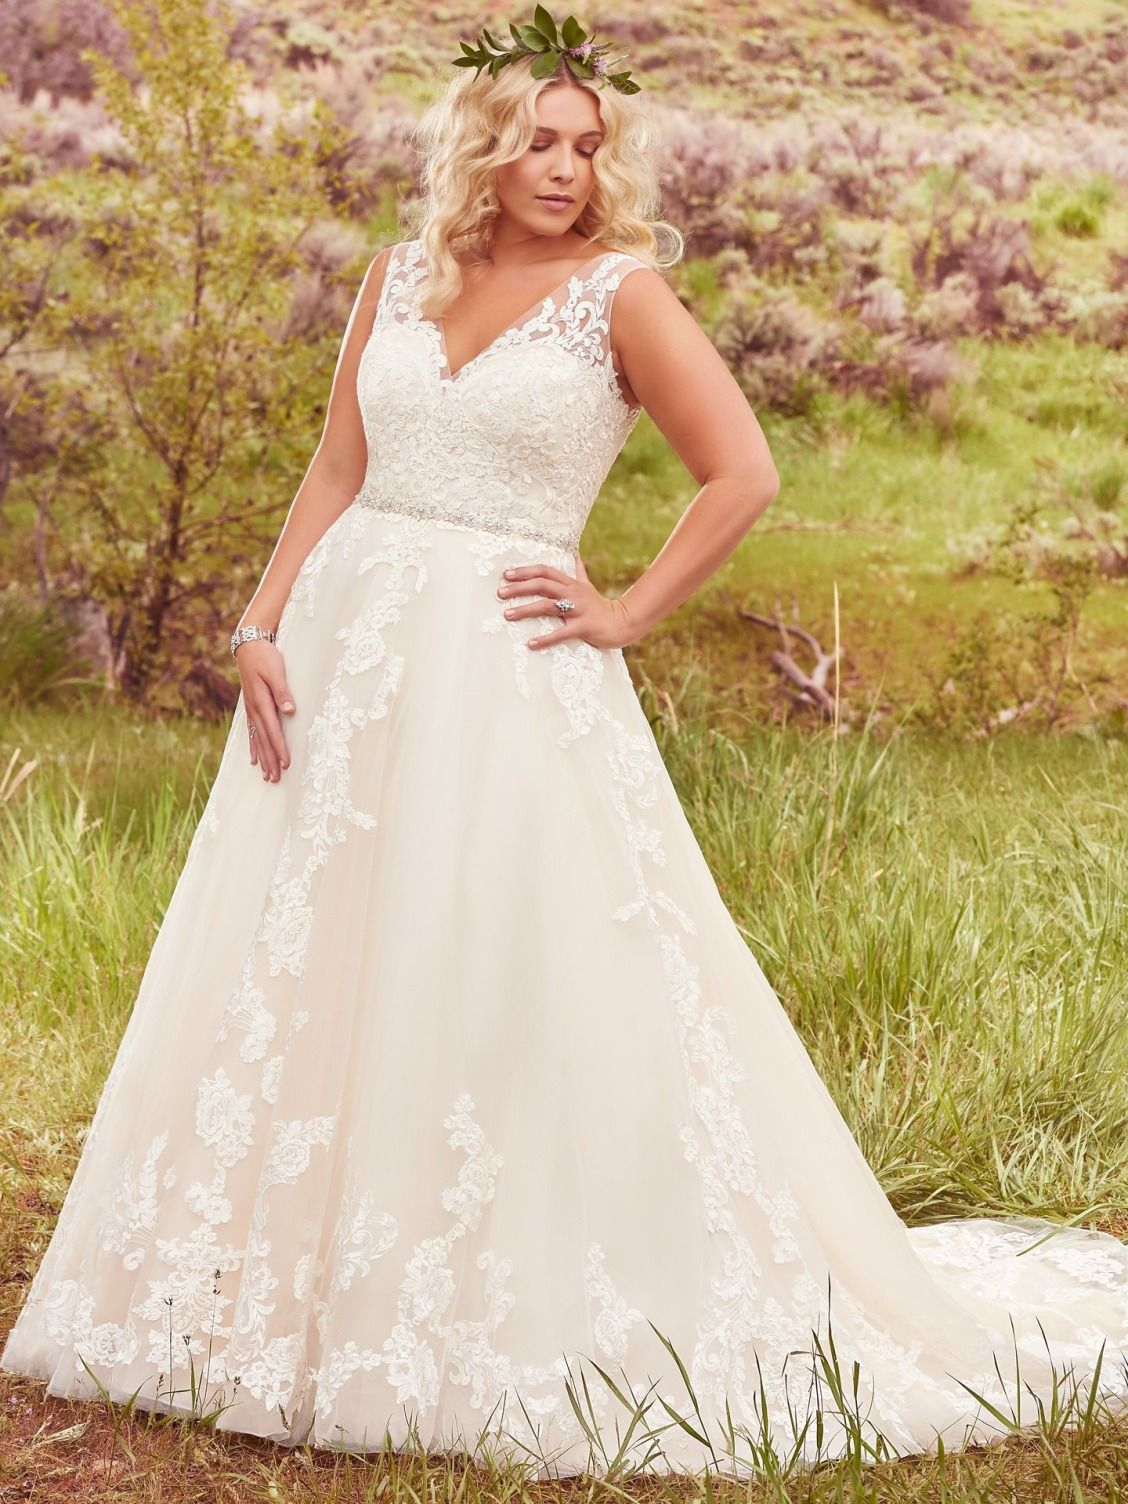 832664965d3f Maggie Sottero - SYBIL, This exquisite ball gown plus size wedding dress is  complete with